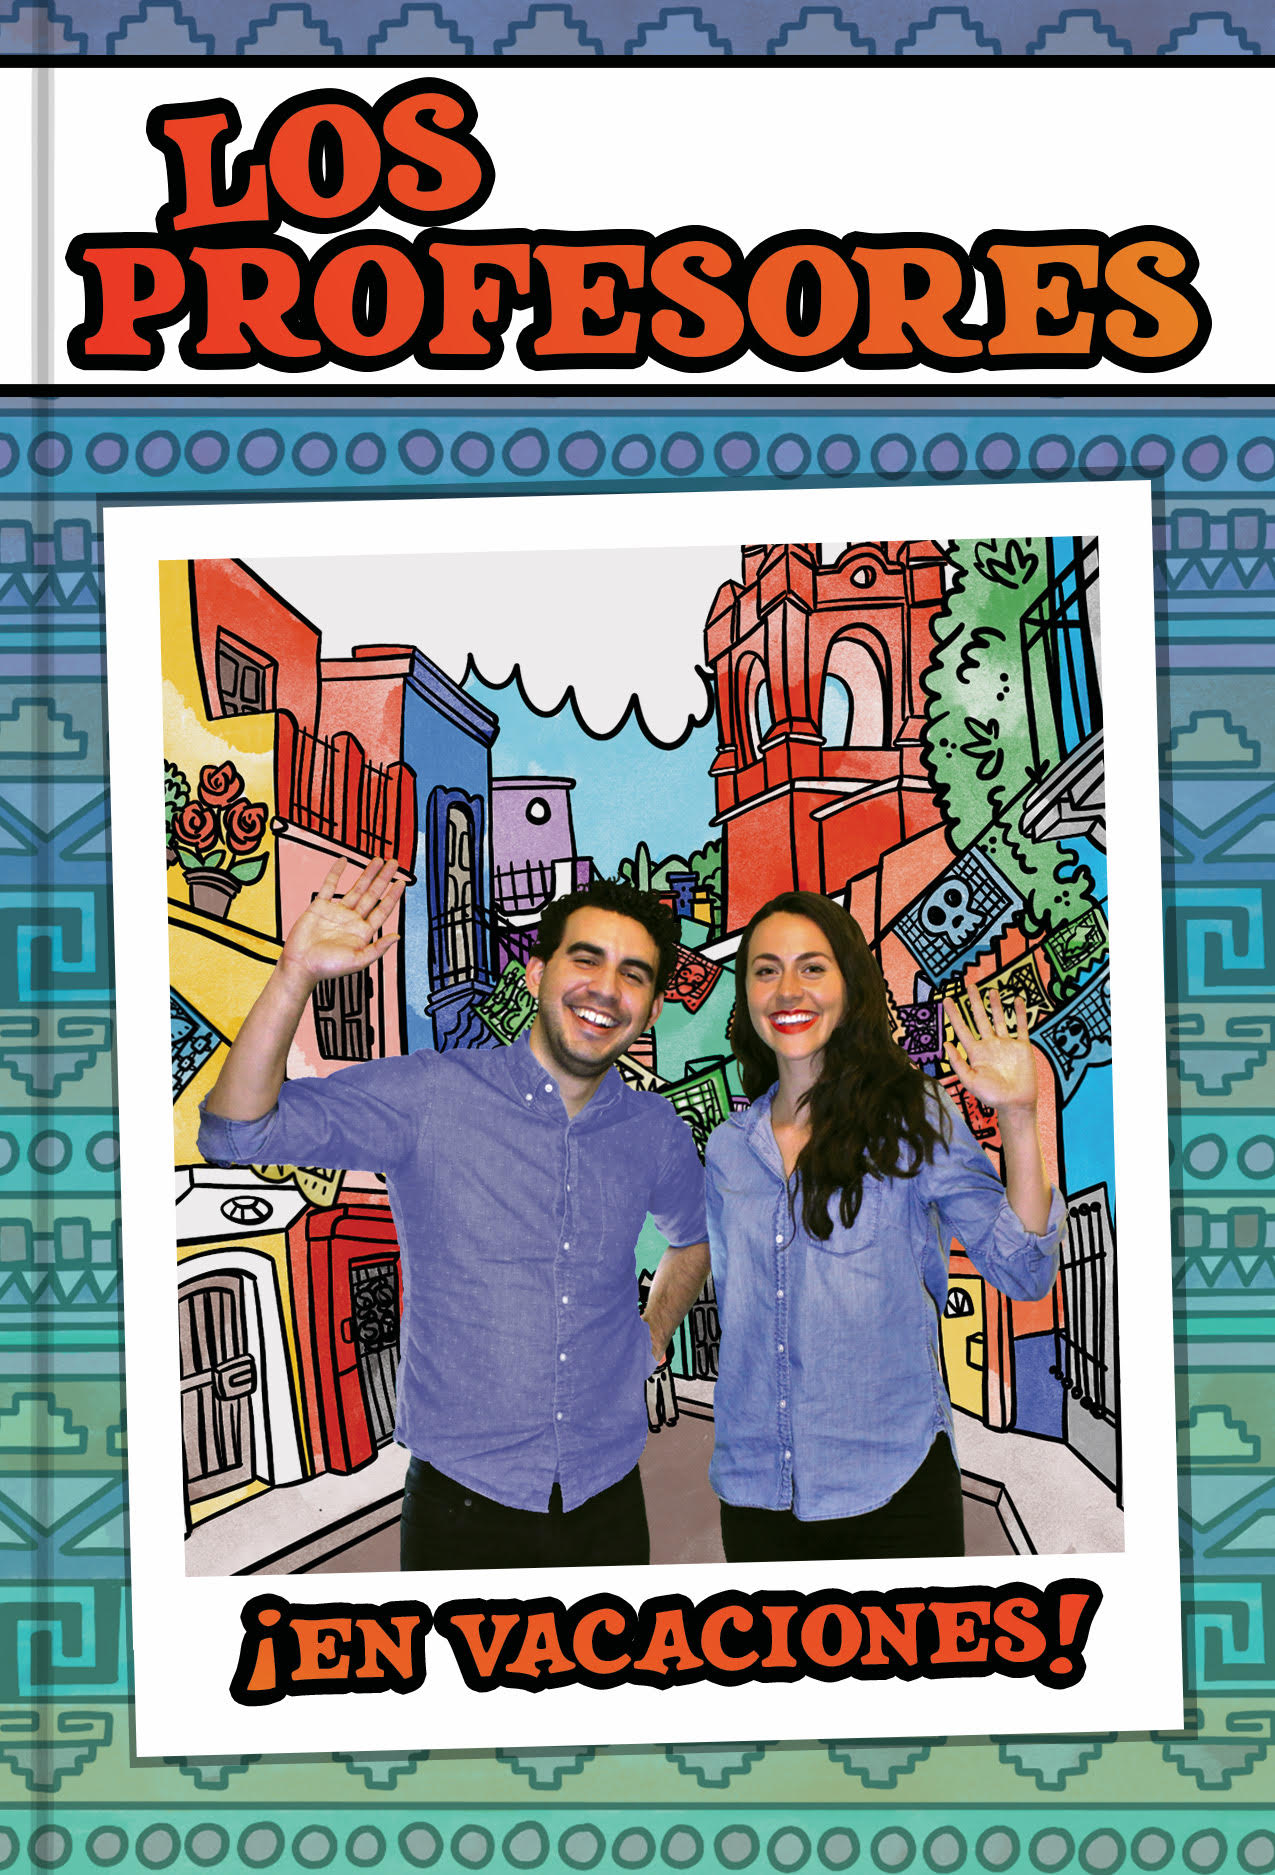 - Los Profesores: ¡En Vacaciones! (Los Profesores: On Vacation!) is a Spanish sketch comedy show for English speakers. It's like your high school Spanish class but much, much dumber and way more insane. In this lesson, Los Profesores go on vacation and teach you all the Spanish you'll need to know for when you visit South America. After this show, you might be able to survive a mugging in Colombia, curse someone out in Mexico, and tell your Argentinian lover you haven't been tested! ¡Que chévere! (How fun!)